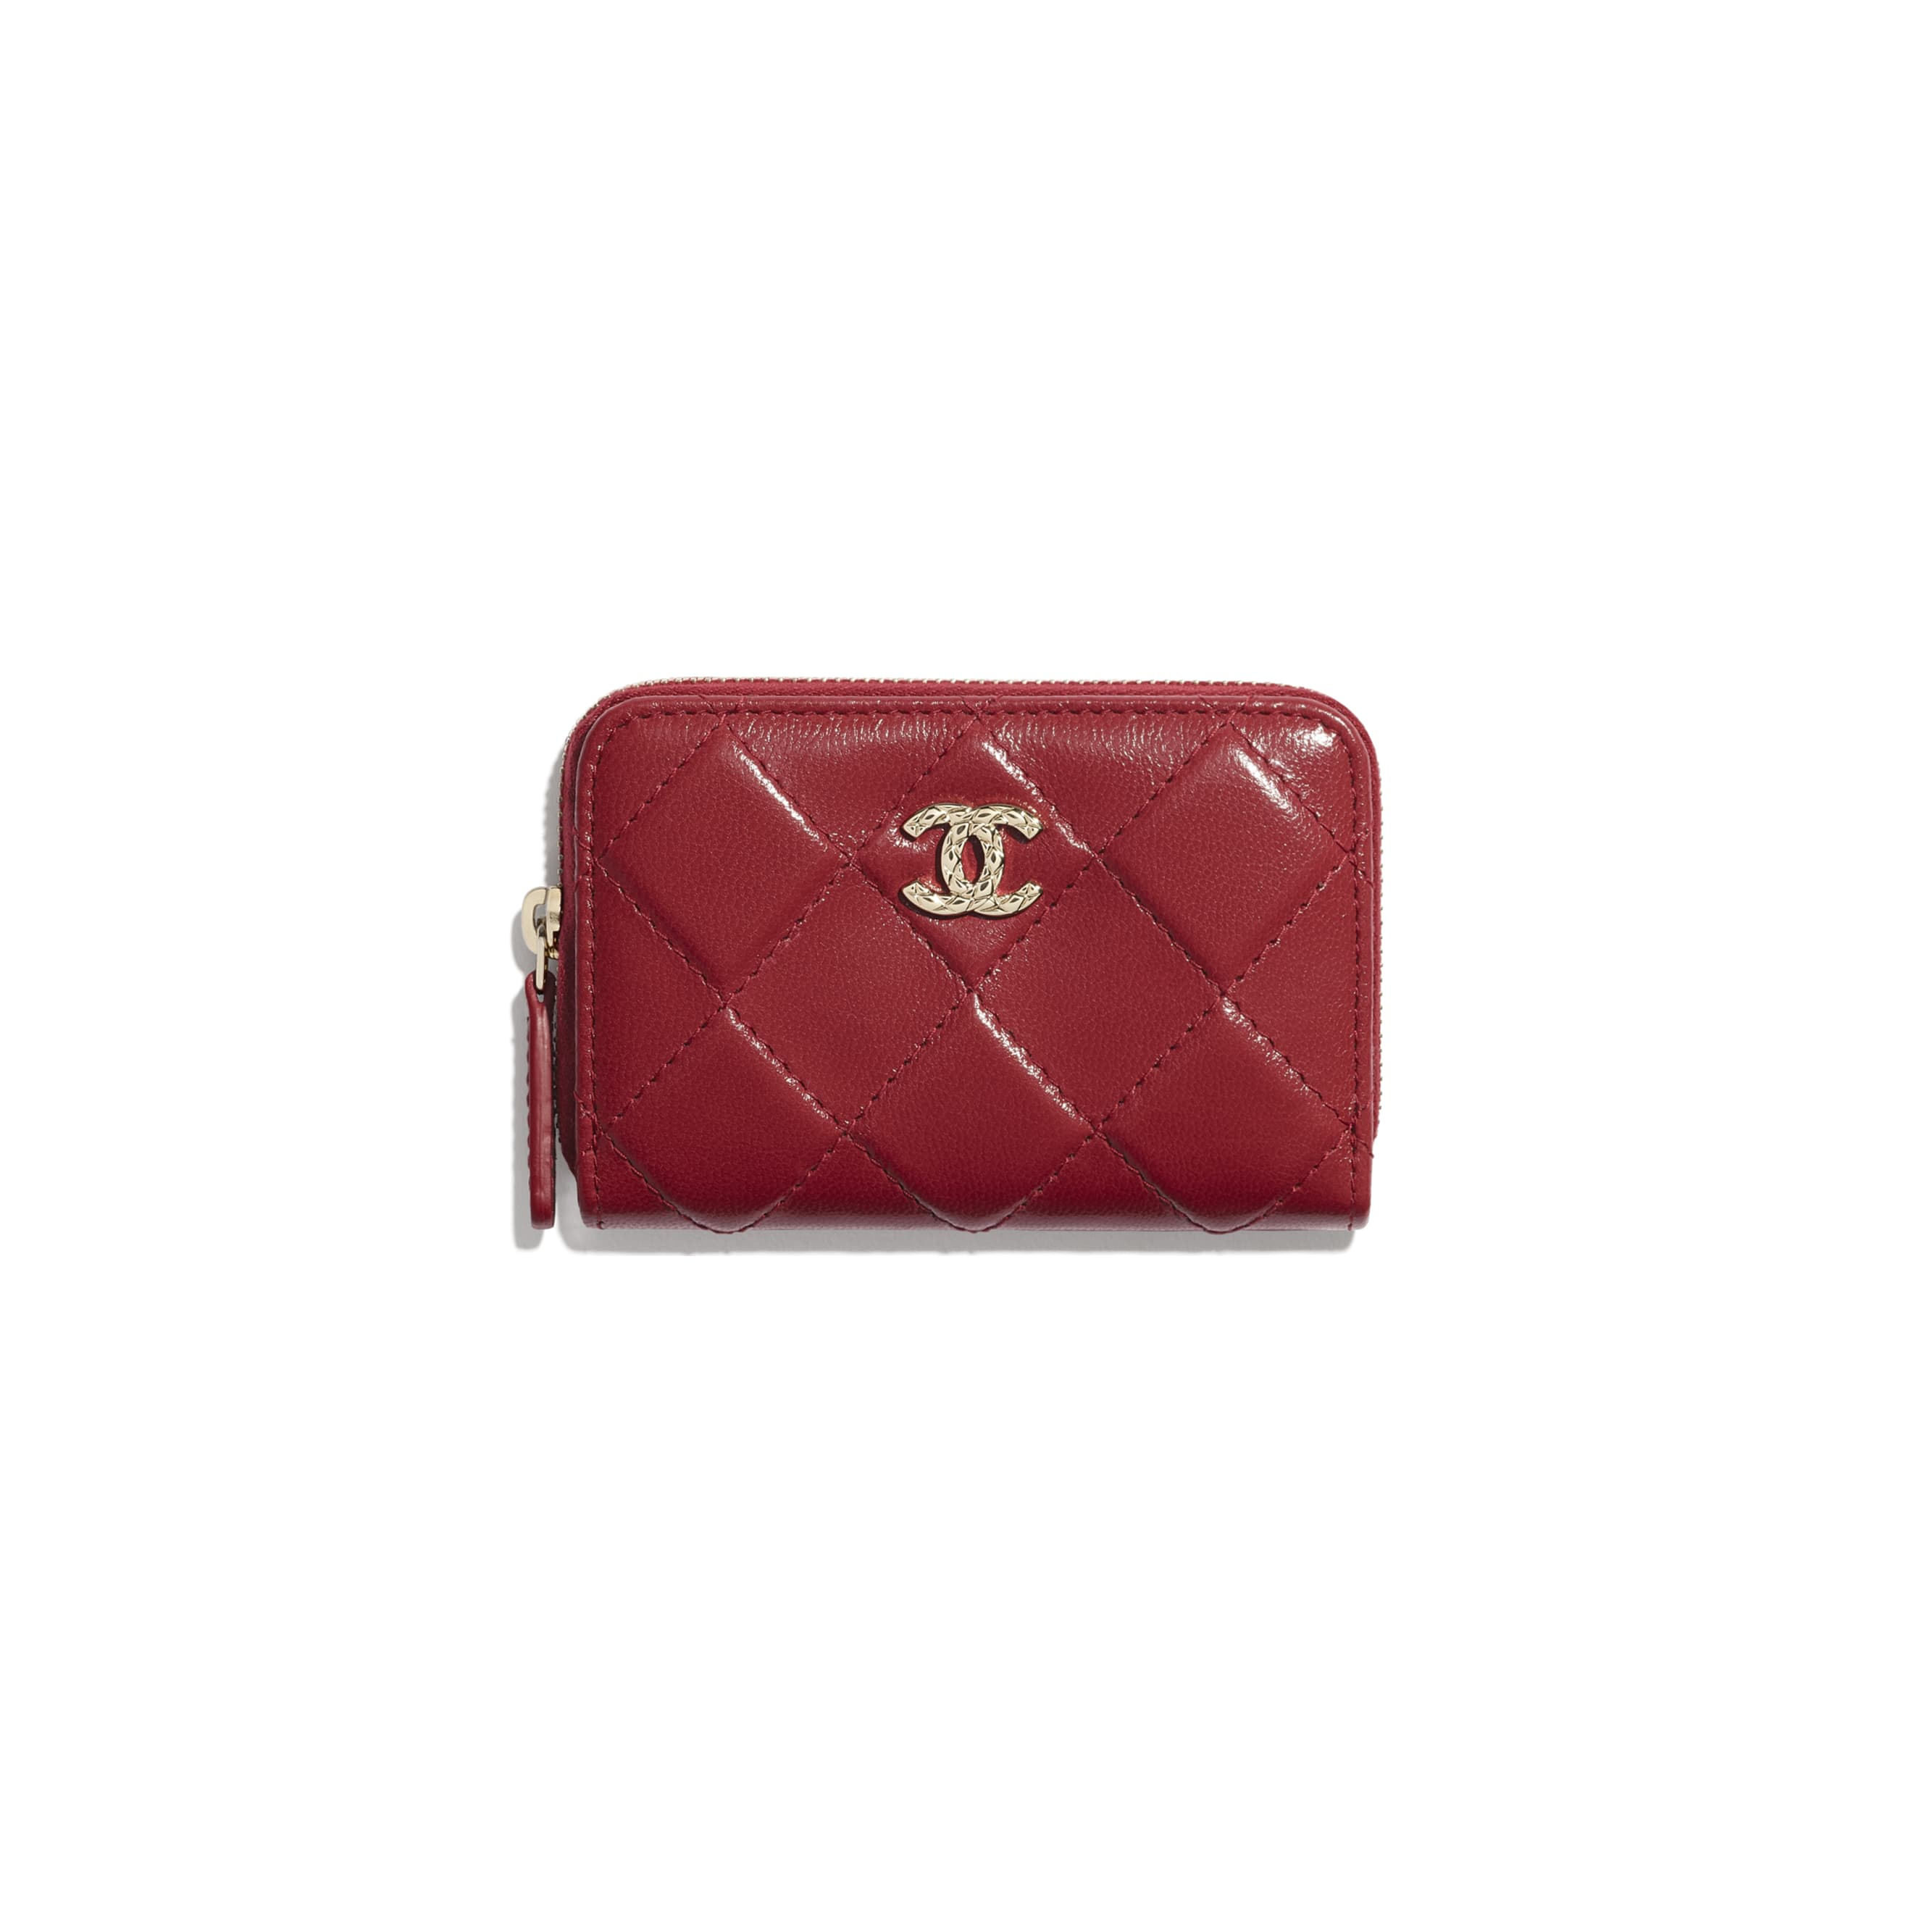 Zipped Coin Purse - Red - Shiny Crumpled Goatskin & Gold-Tone Metal - CHANEL - Default view - see standard sized version